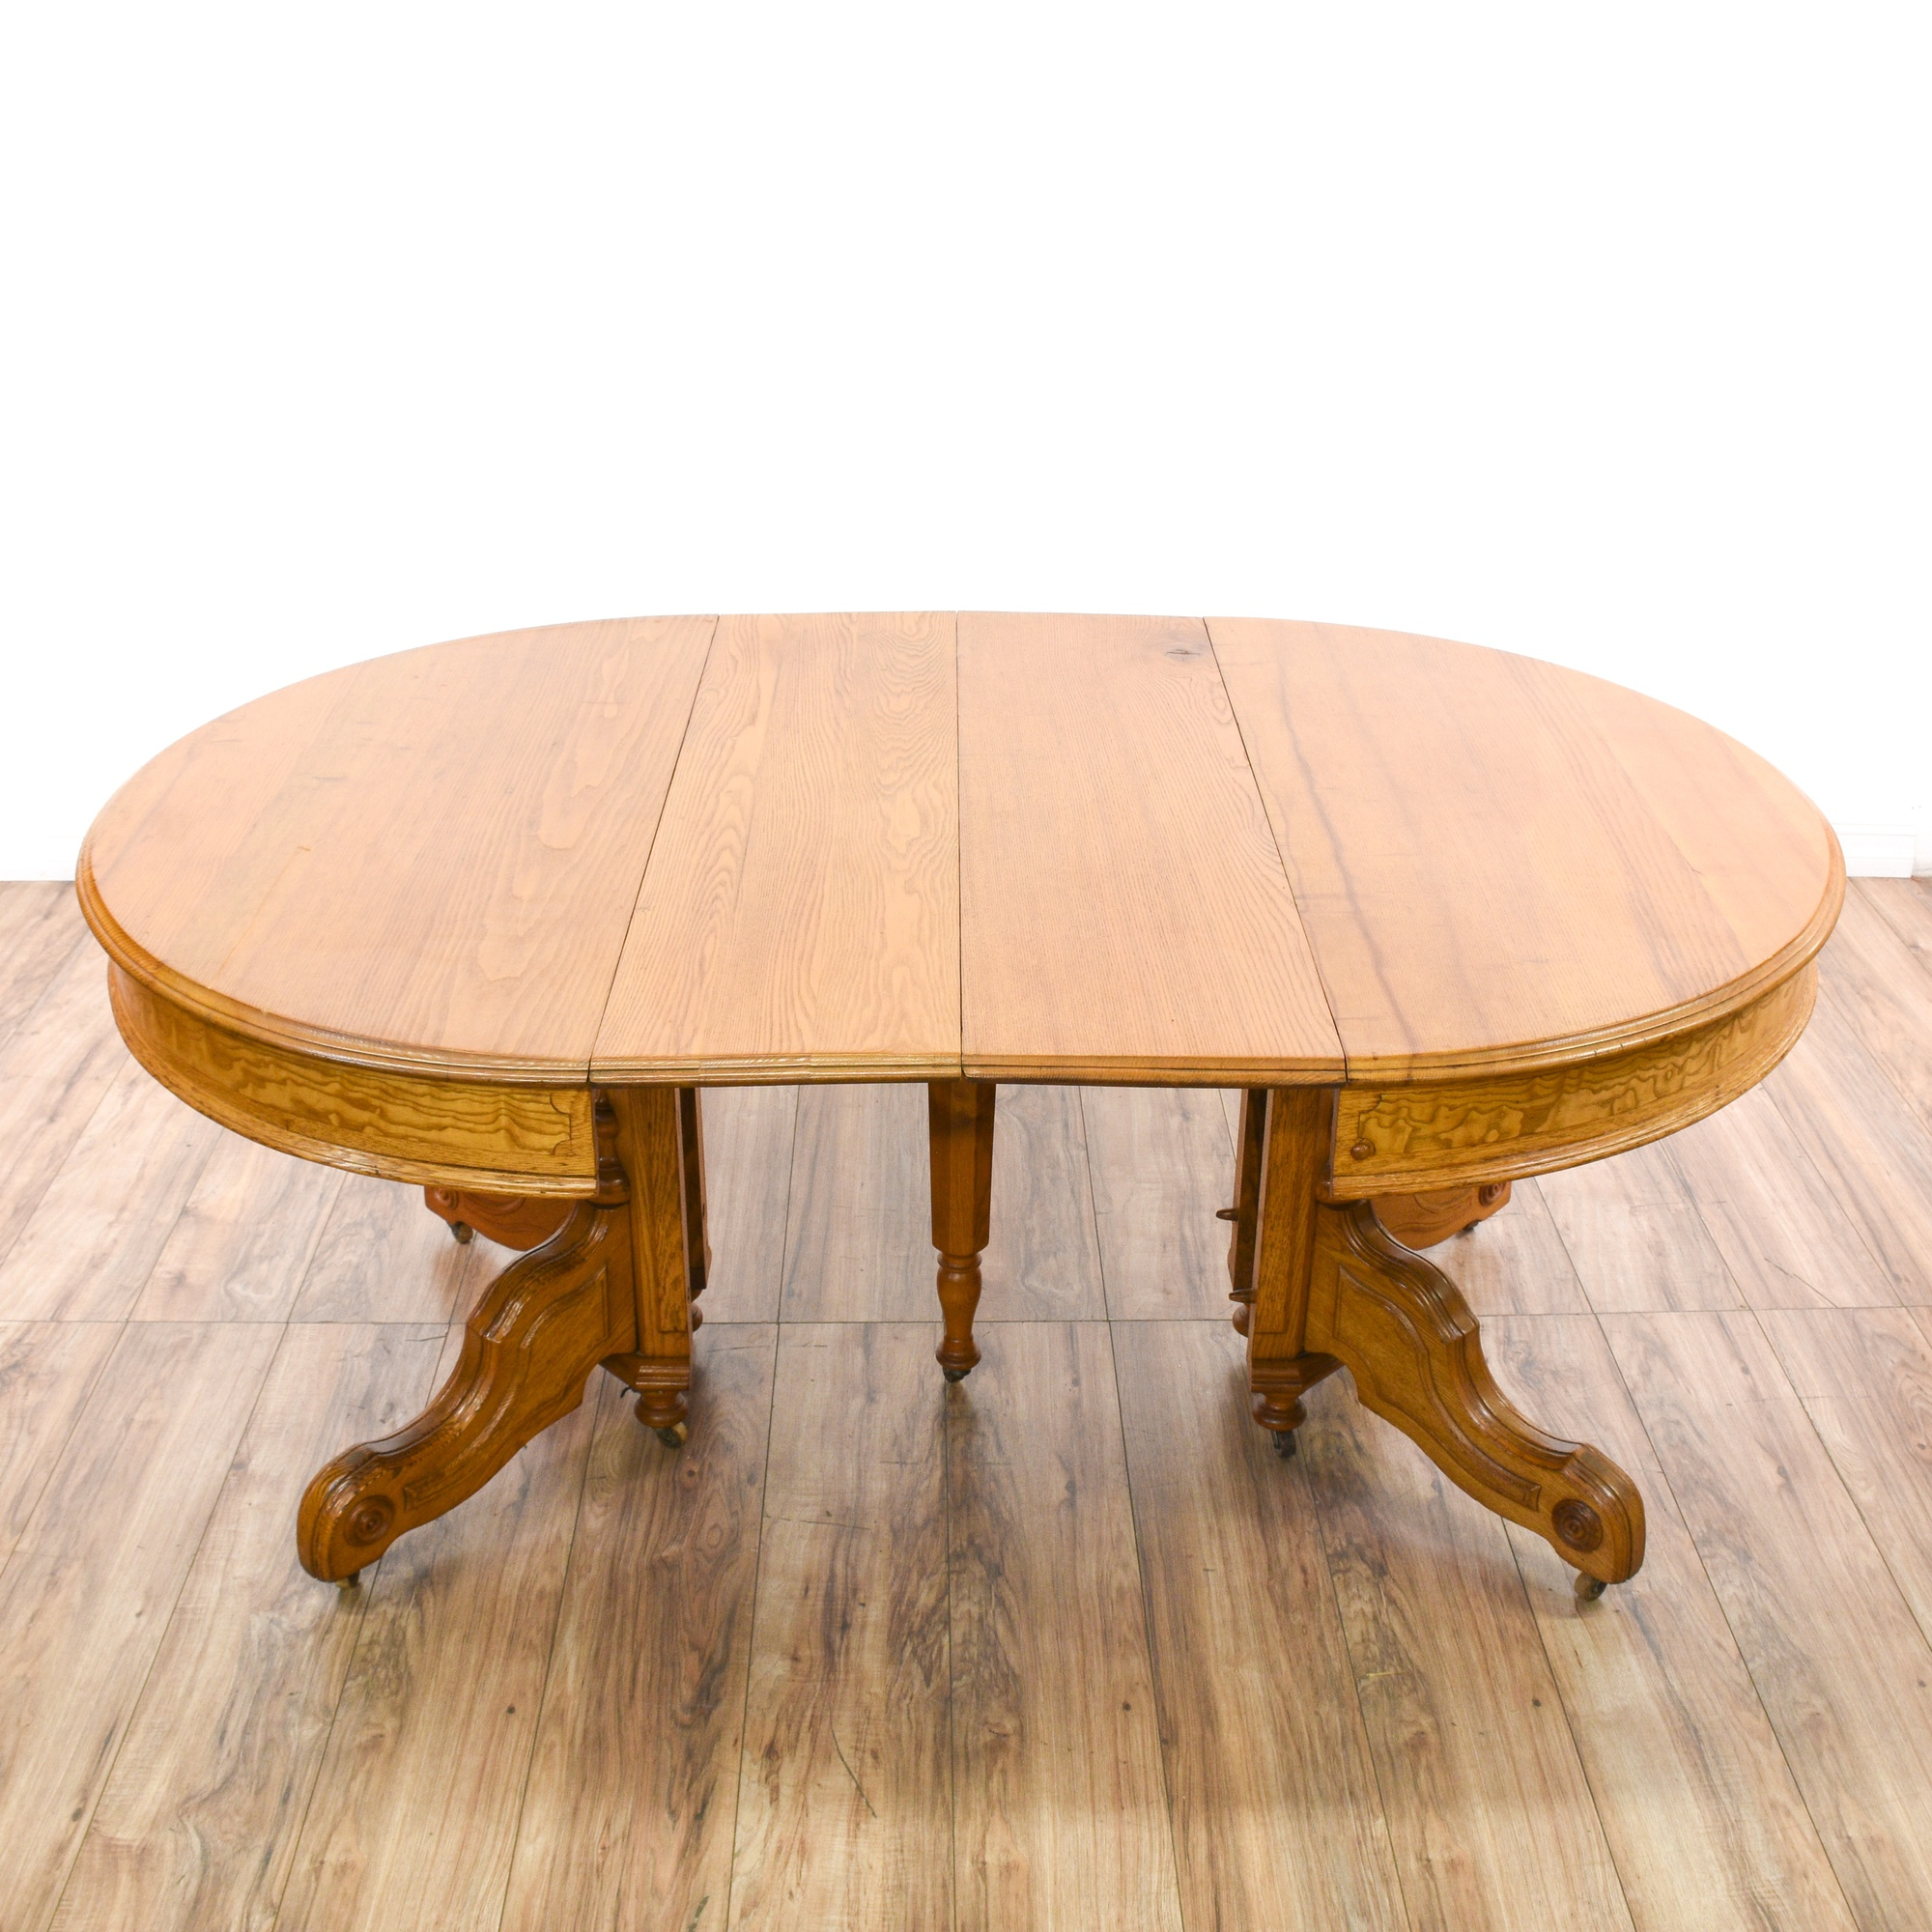 Dining Room Furniture San Diego: Round Light Oak Carved Dining Table W/ 2 Leaves